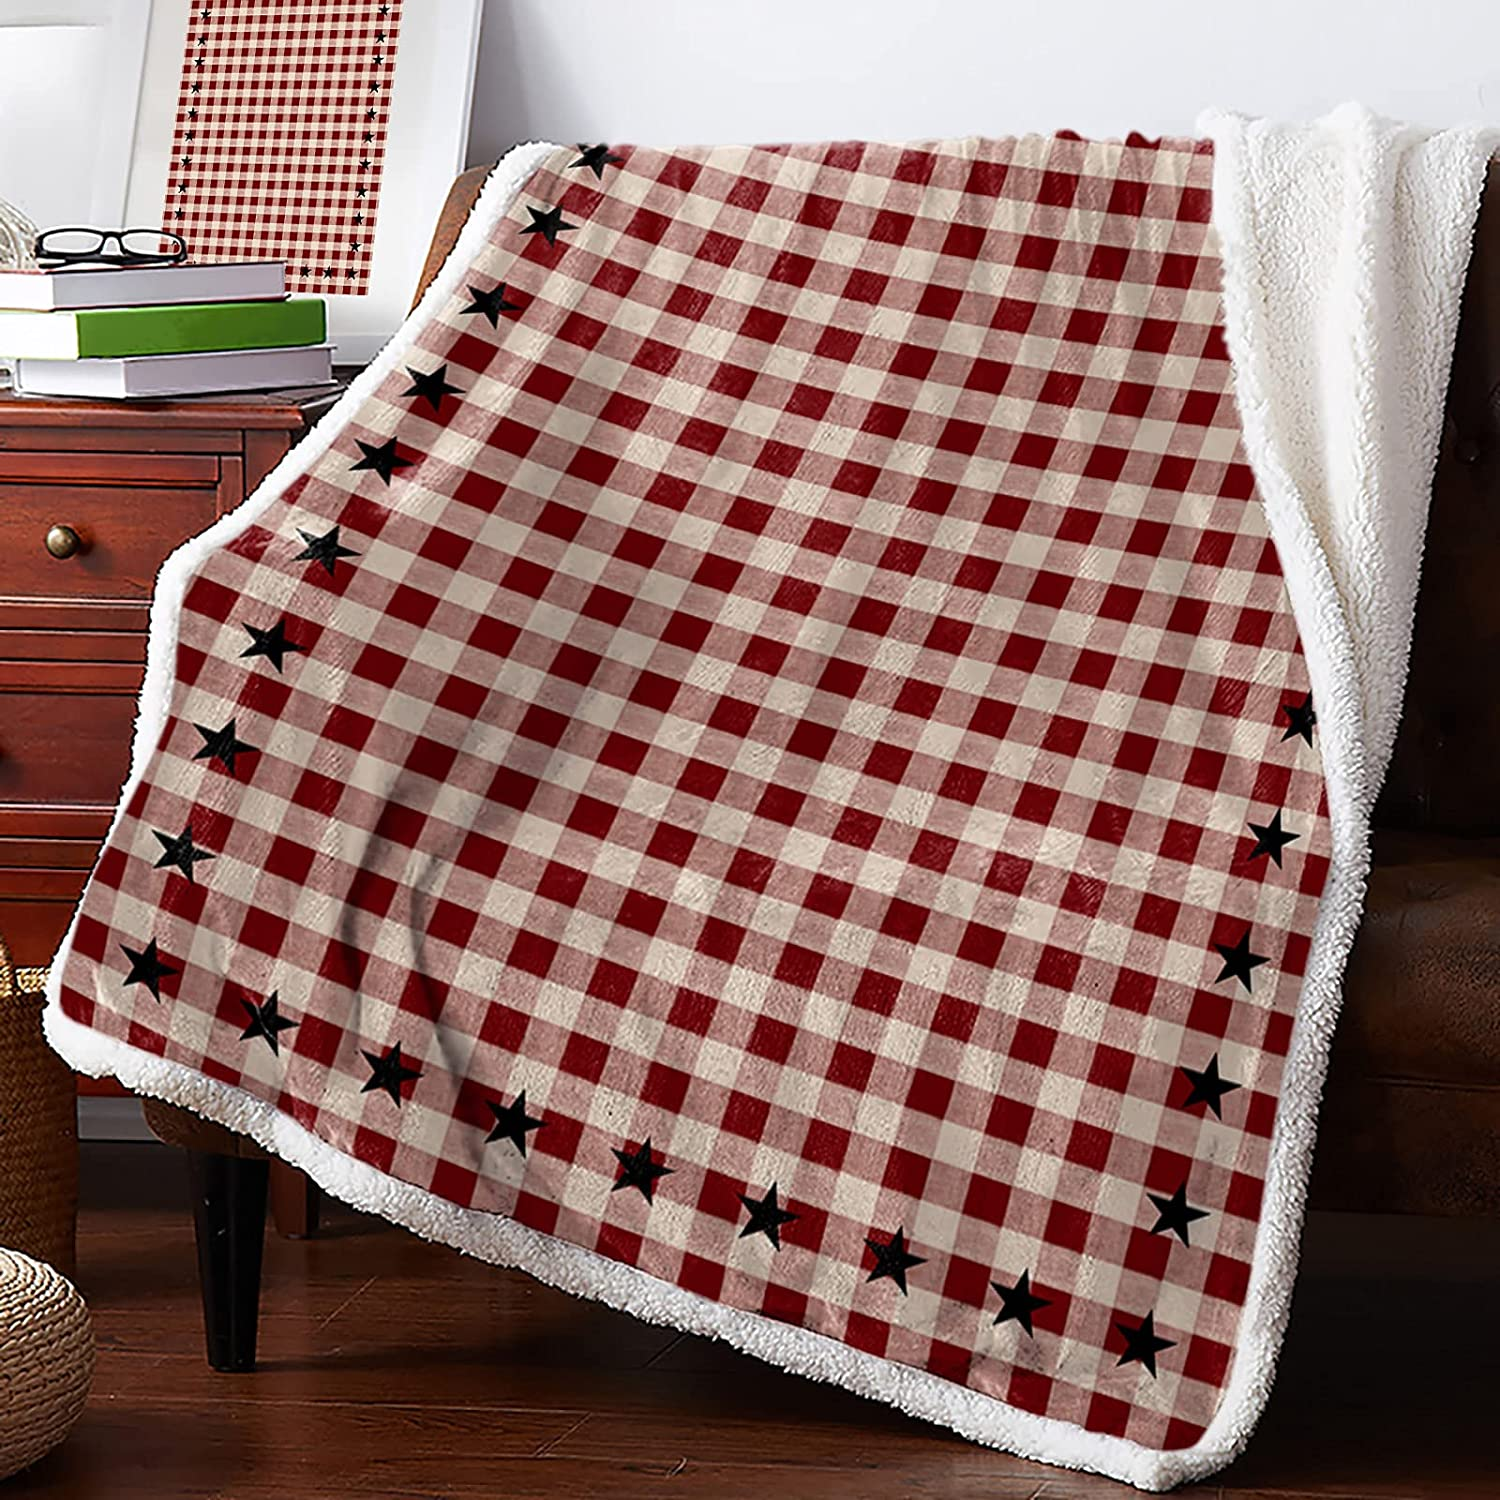 MUSEDAY Sherpa Fleece Throw Blanket Max 53% OFF Fuzzy F Direct stock discount Flannel Soft